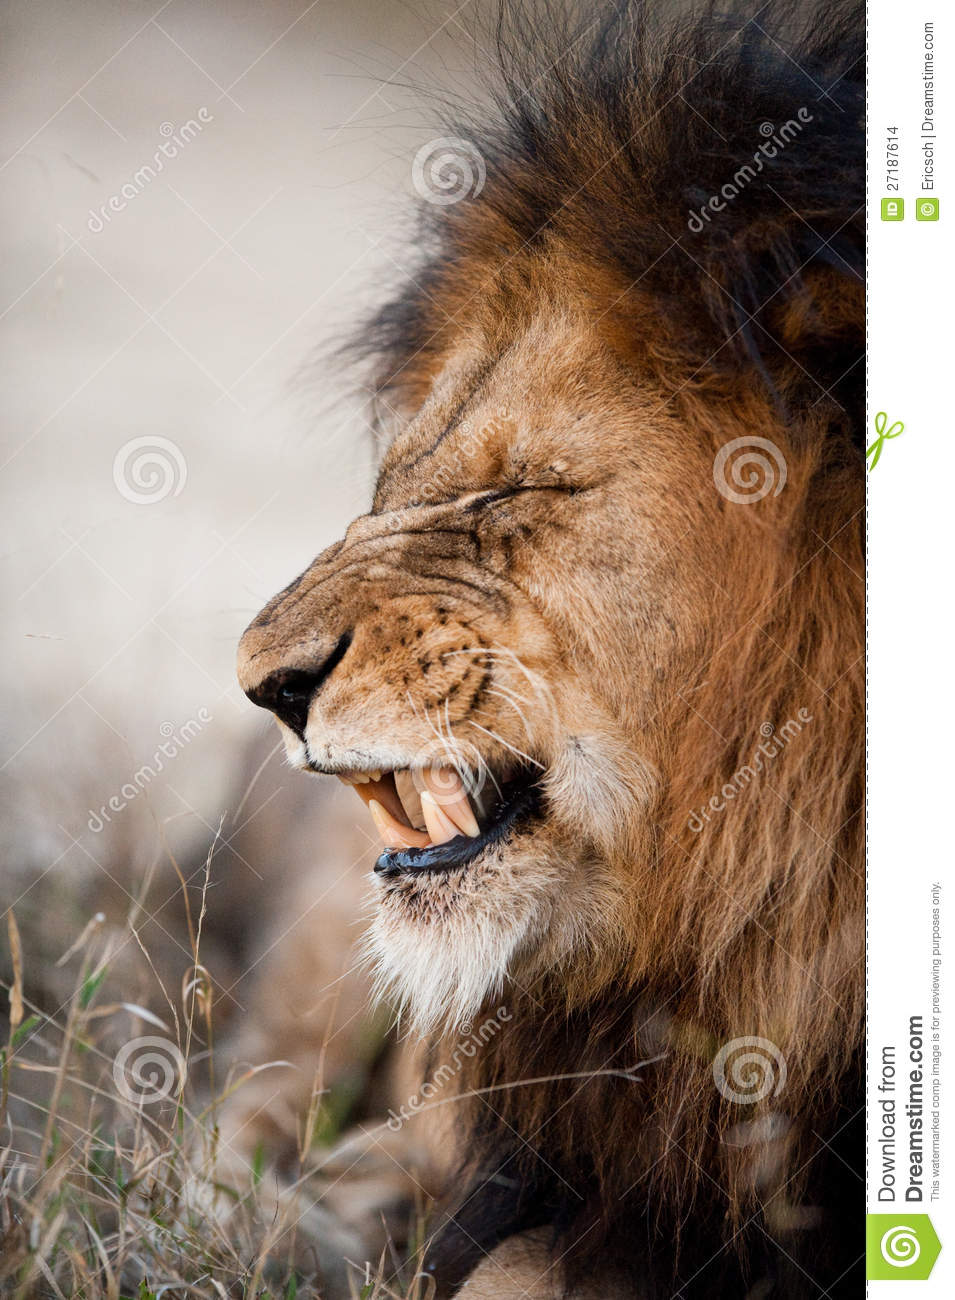 More similar stock images of ` Lion baring his teeth `